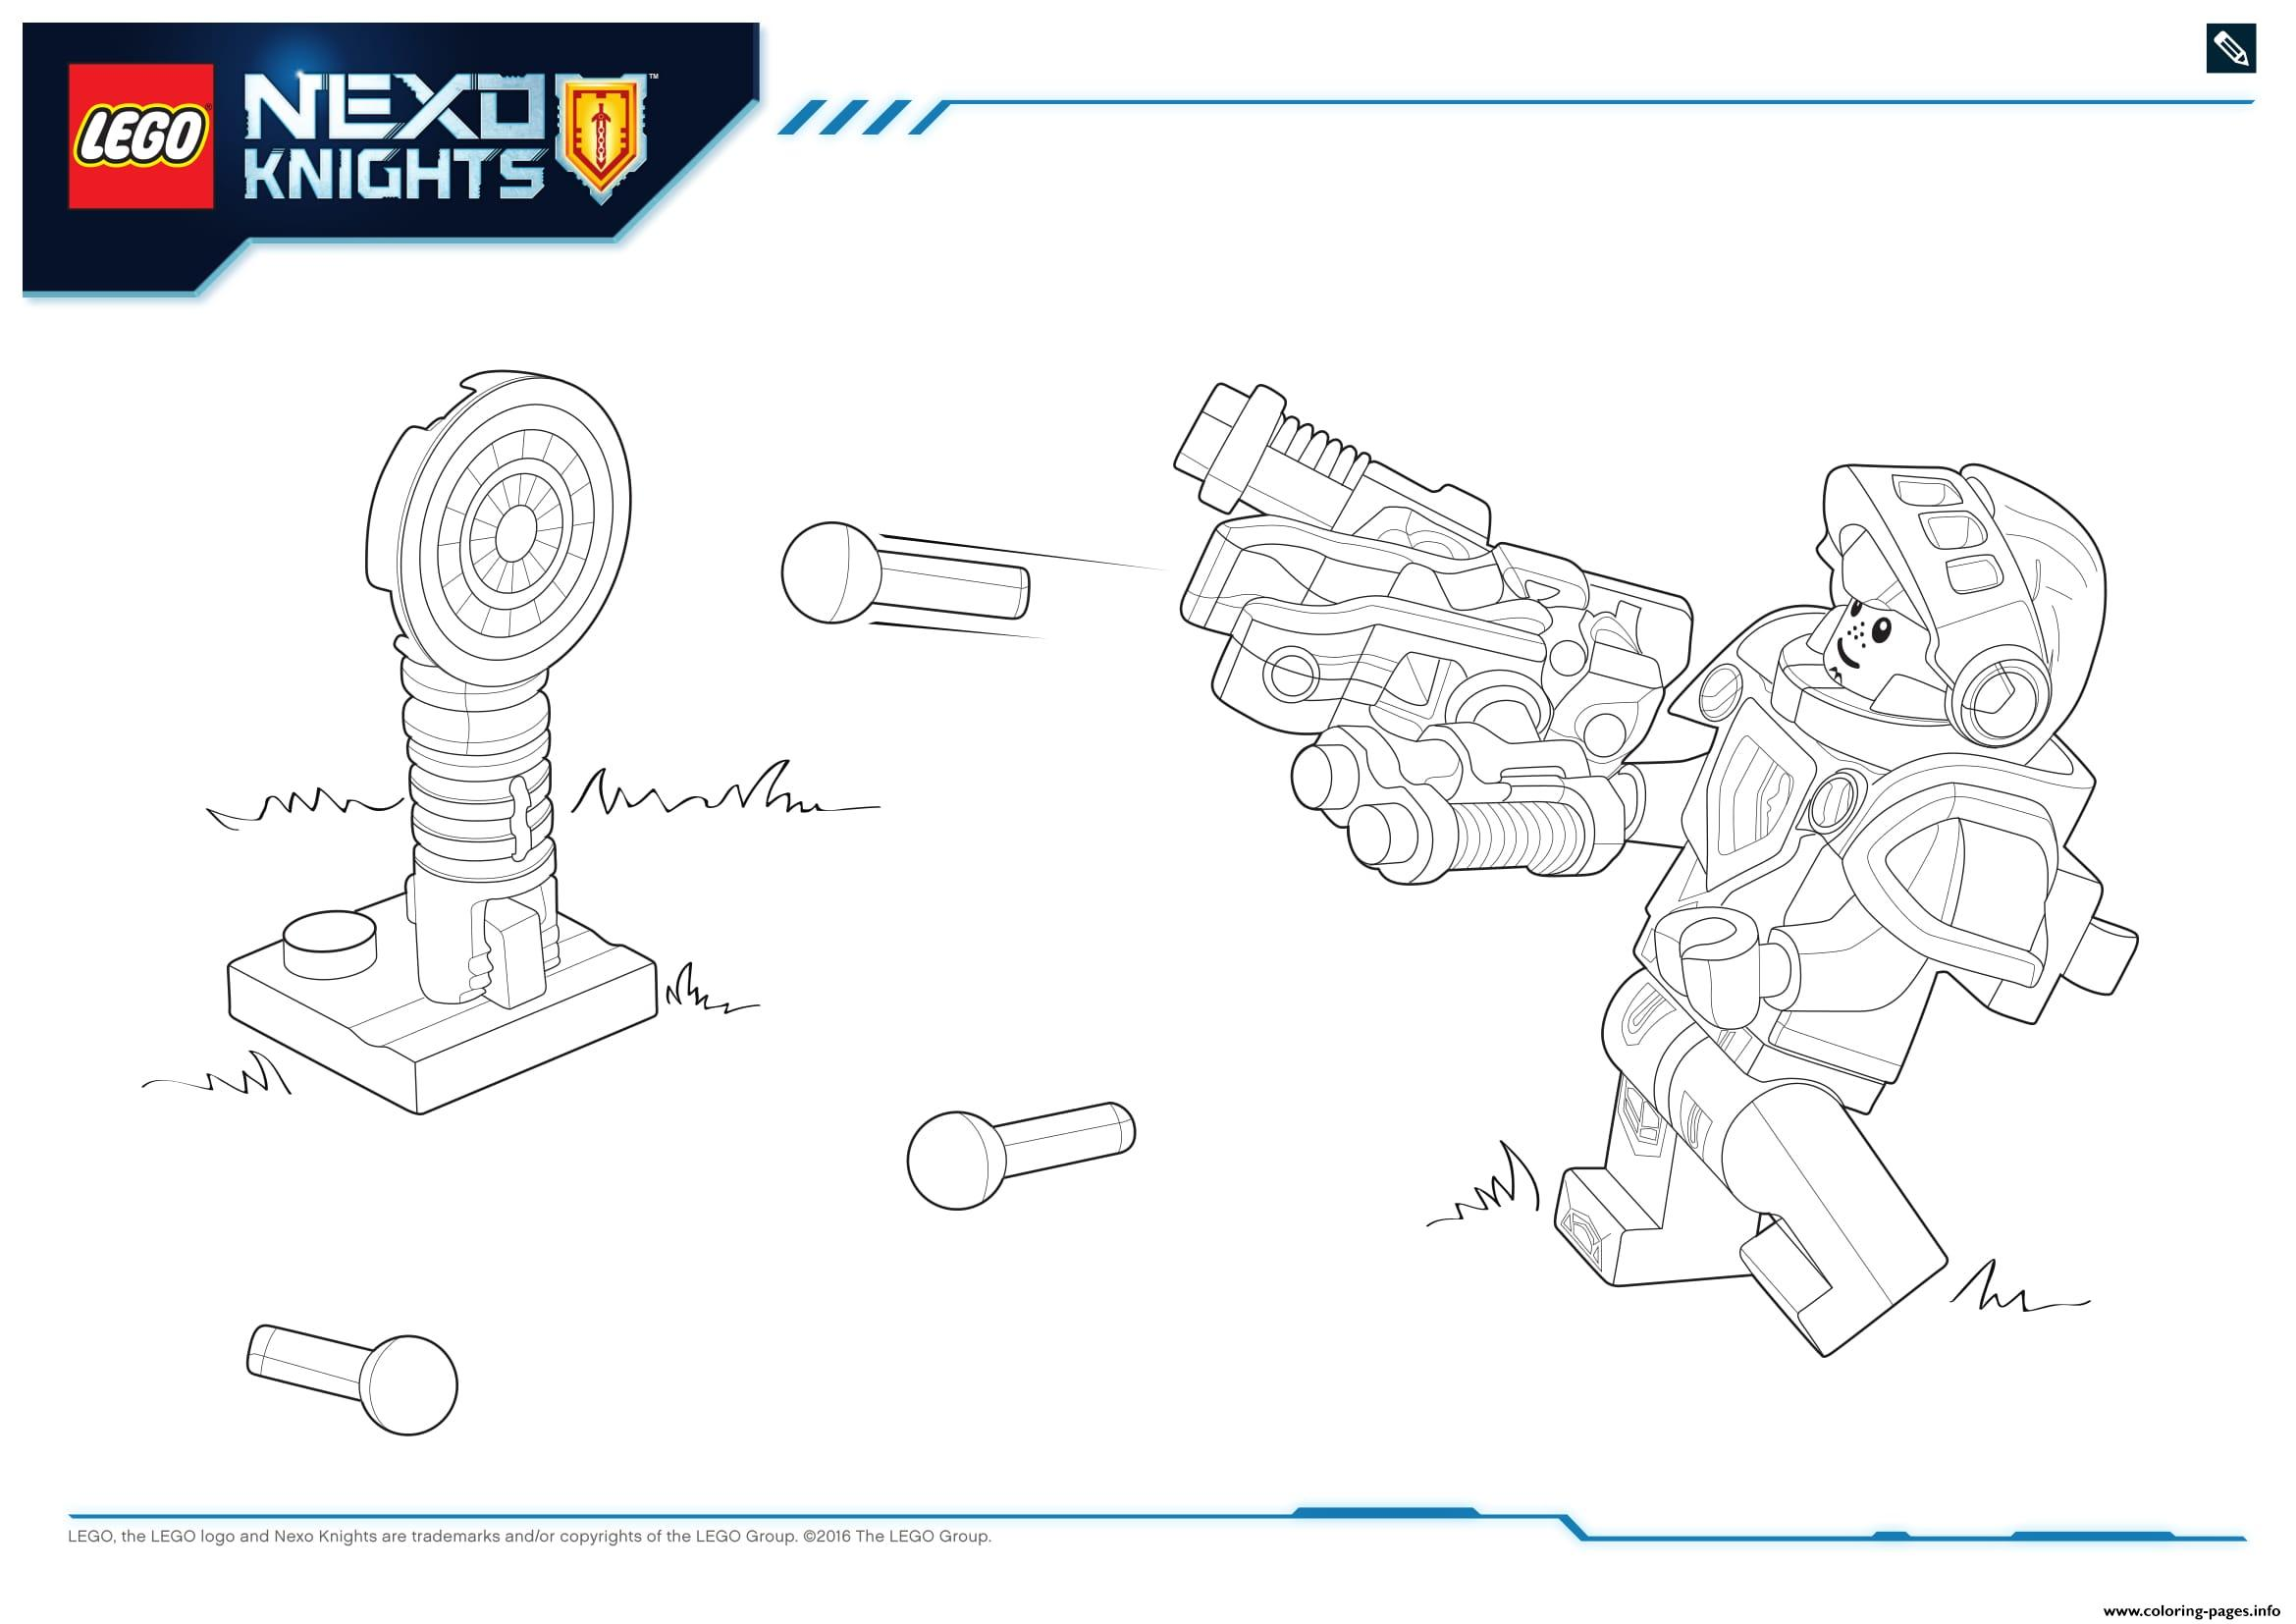 Lego NEXO KNIGHTS Products 7 coloring pages